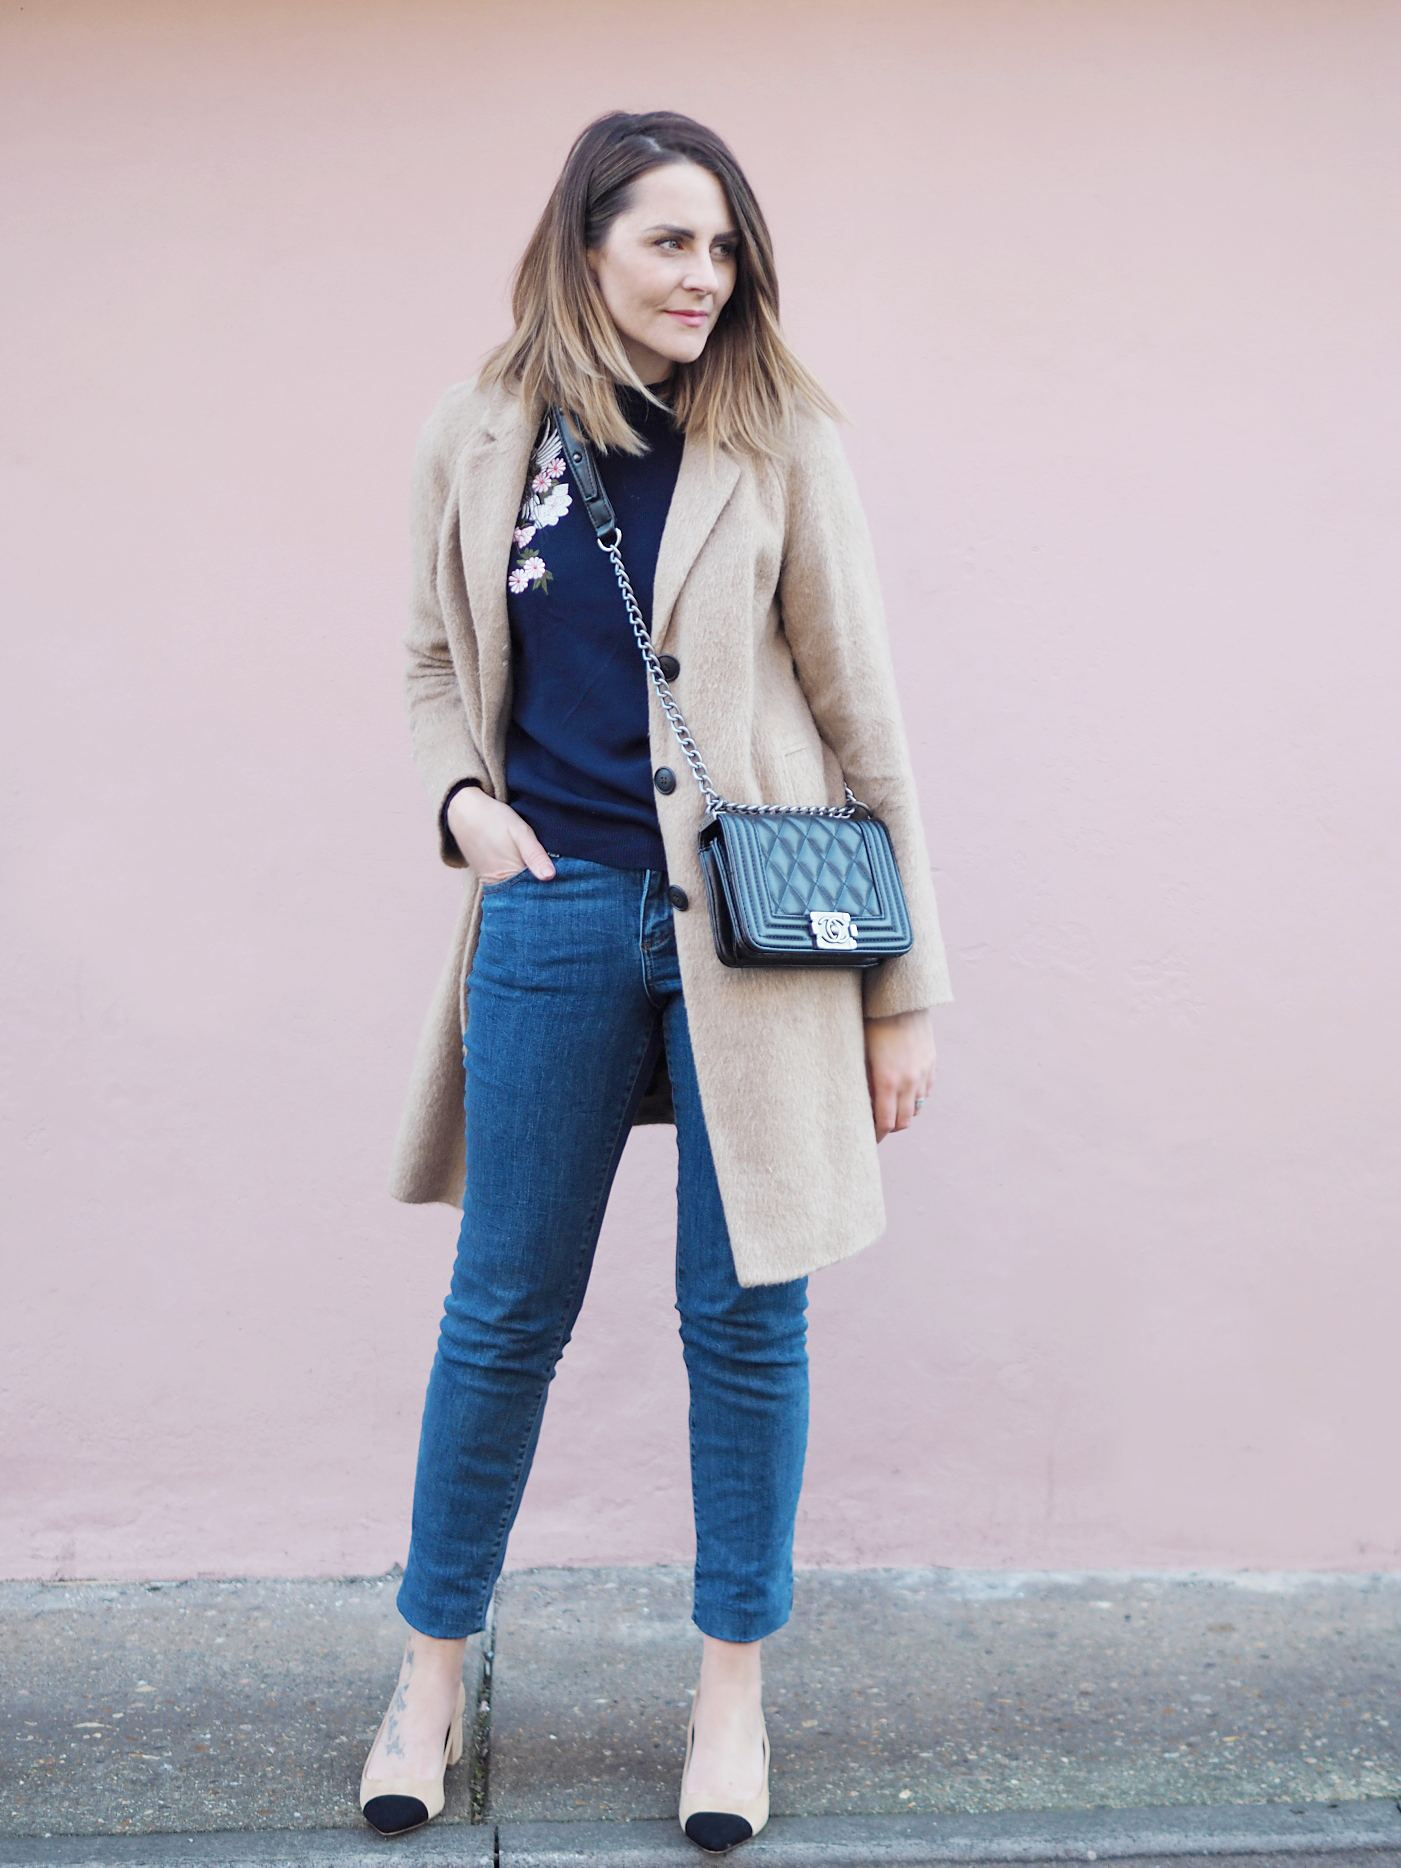 dorothy perkins outfit embroidered jumper and camel coat with chanel boy bag